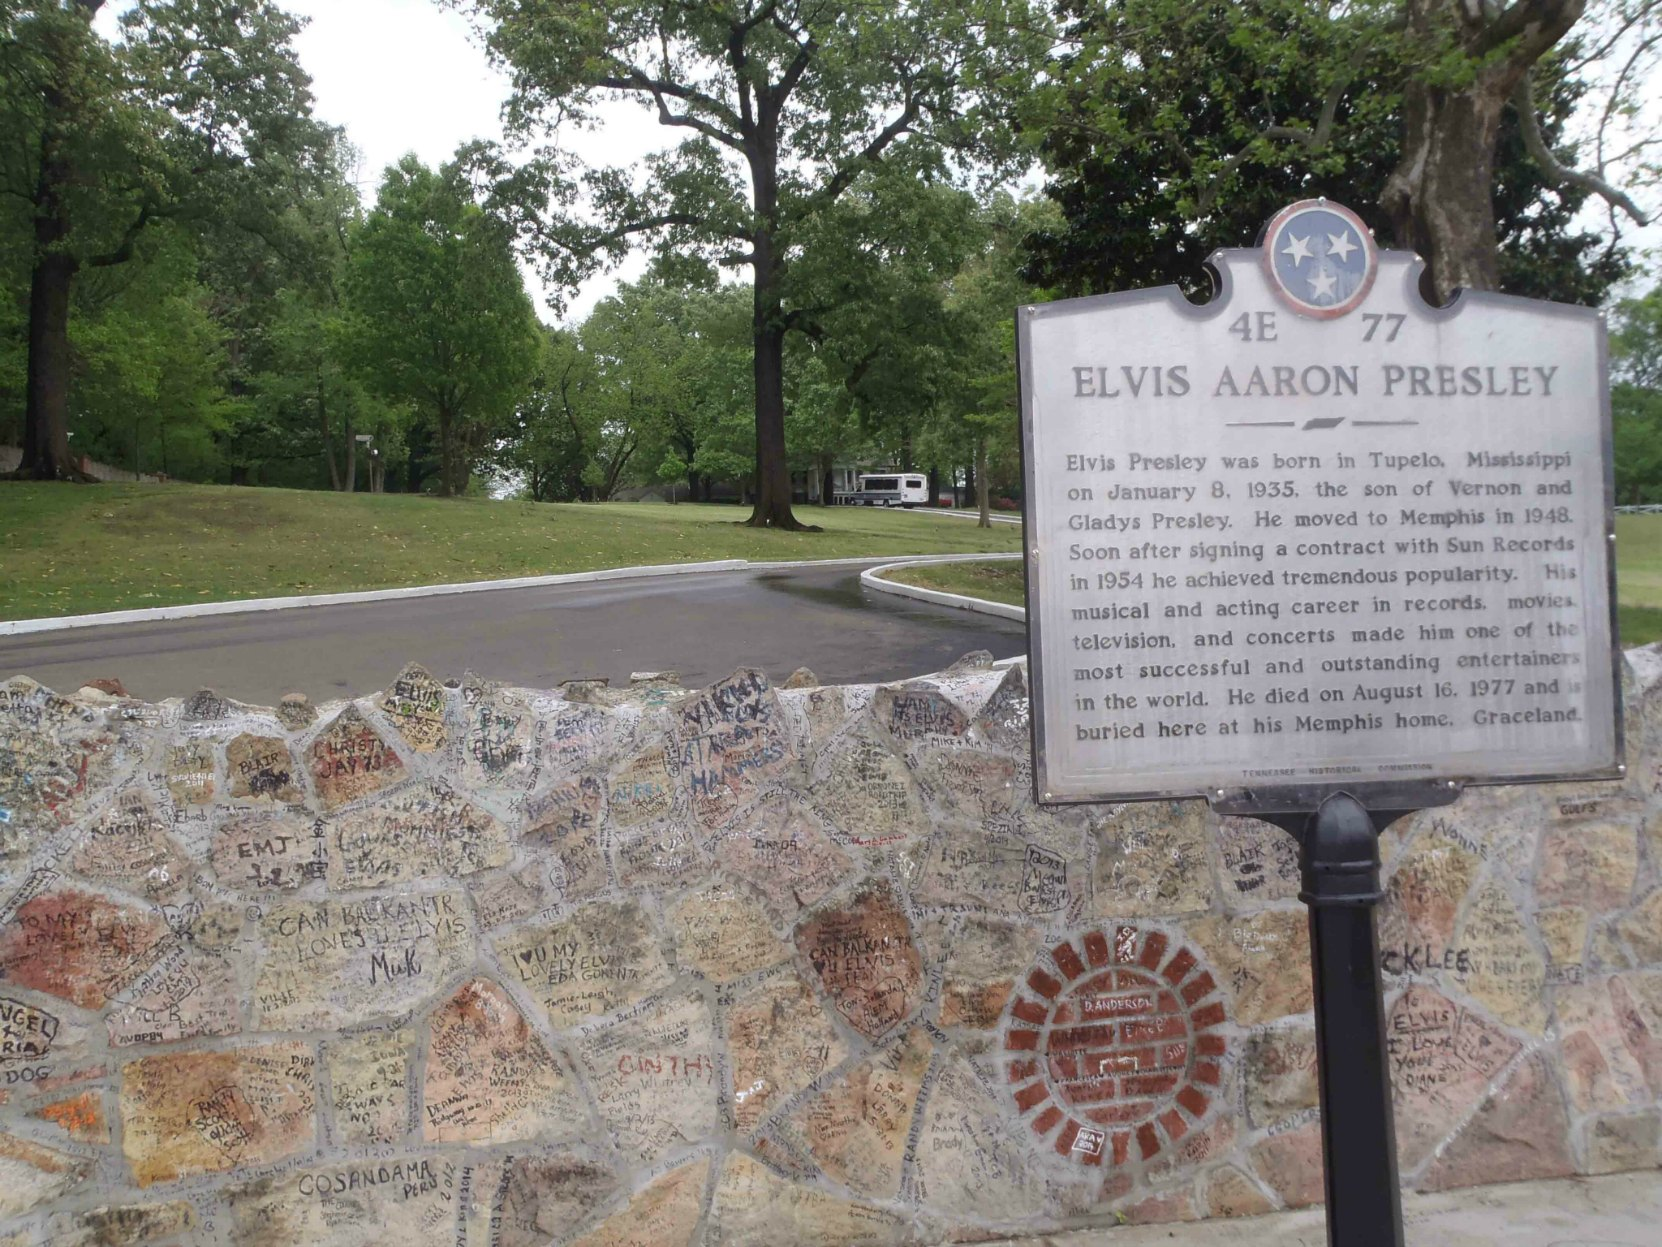 Tennessee Historical Commission marker commemorating Elvis Aaron Presley, outside Graceland, Memphis, Tennessee